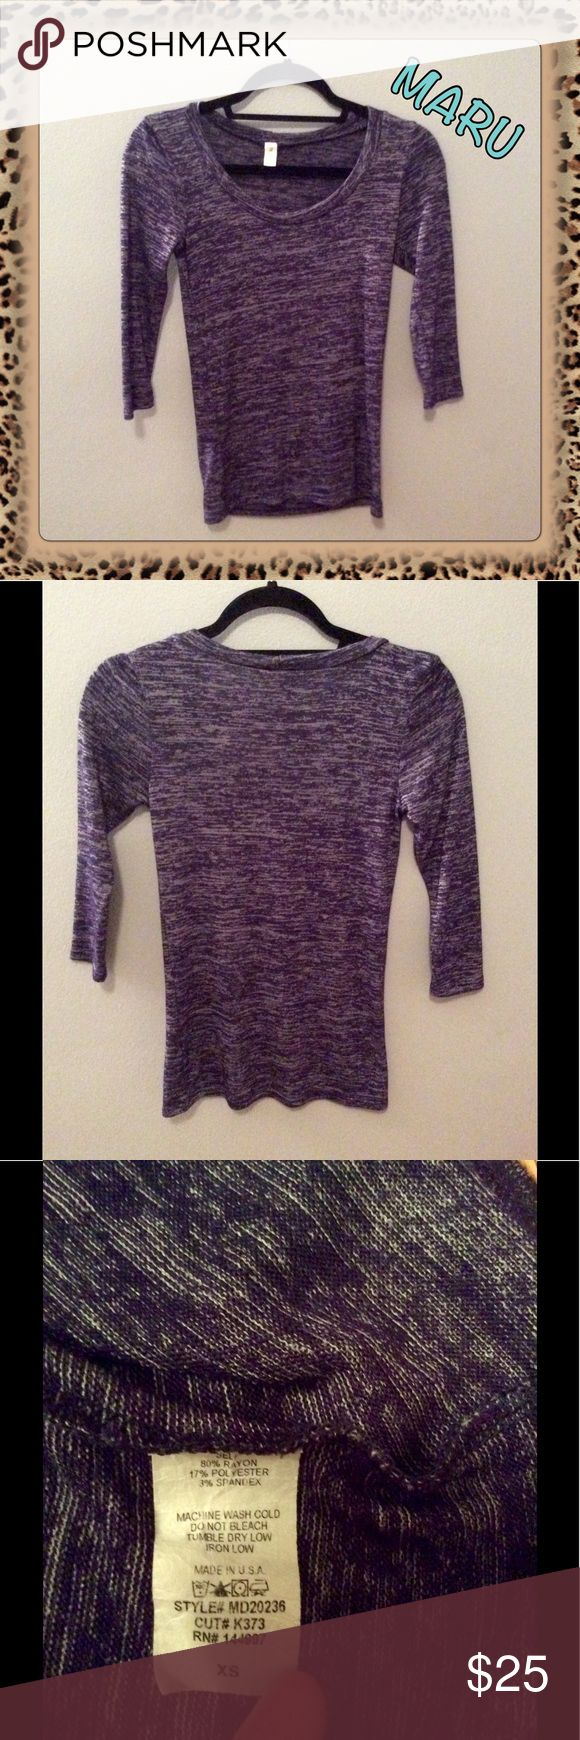 NWOT MARU 3/4 Length Sleeve Scoopneck Top New without tags - purchased on here and just never wore it, has been hanging in my closet ever since. Please see third picture for material & washing info. No trades. Lowest price unless bundled (trying to get my money back). Comes from smoke & pet free home. Don't hesitate to ask any questions! Tags: Stitch Fix, Golden Tote, ModCloth MARU Tops